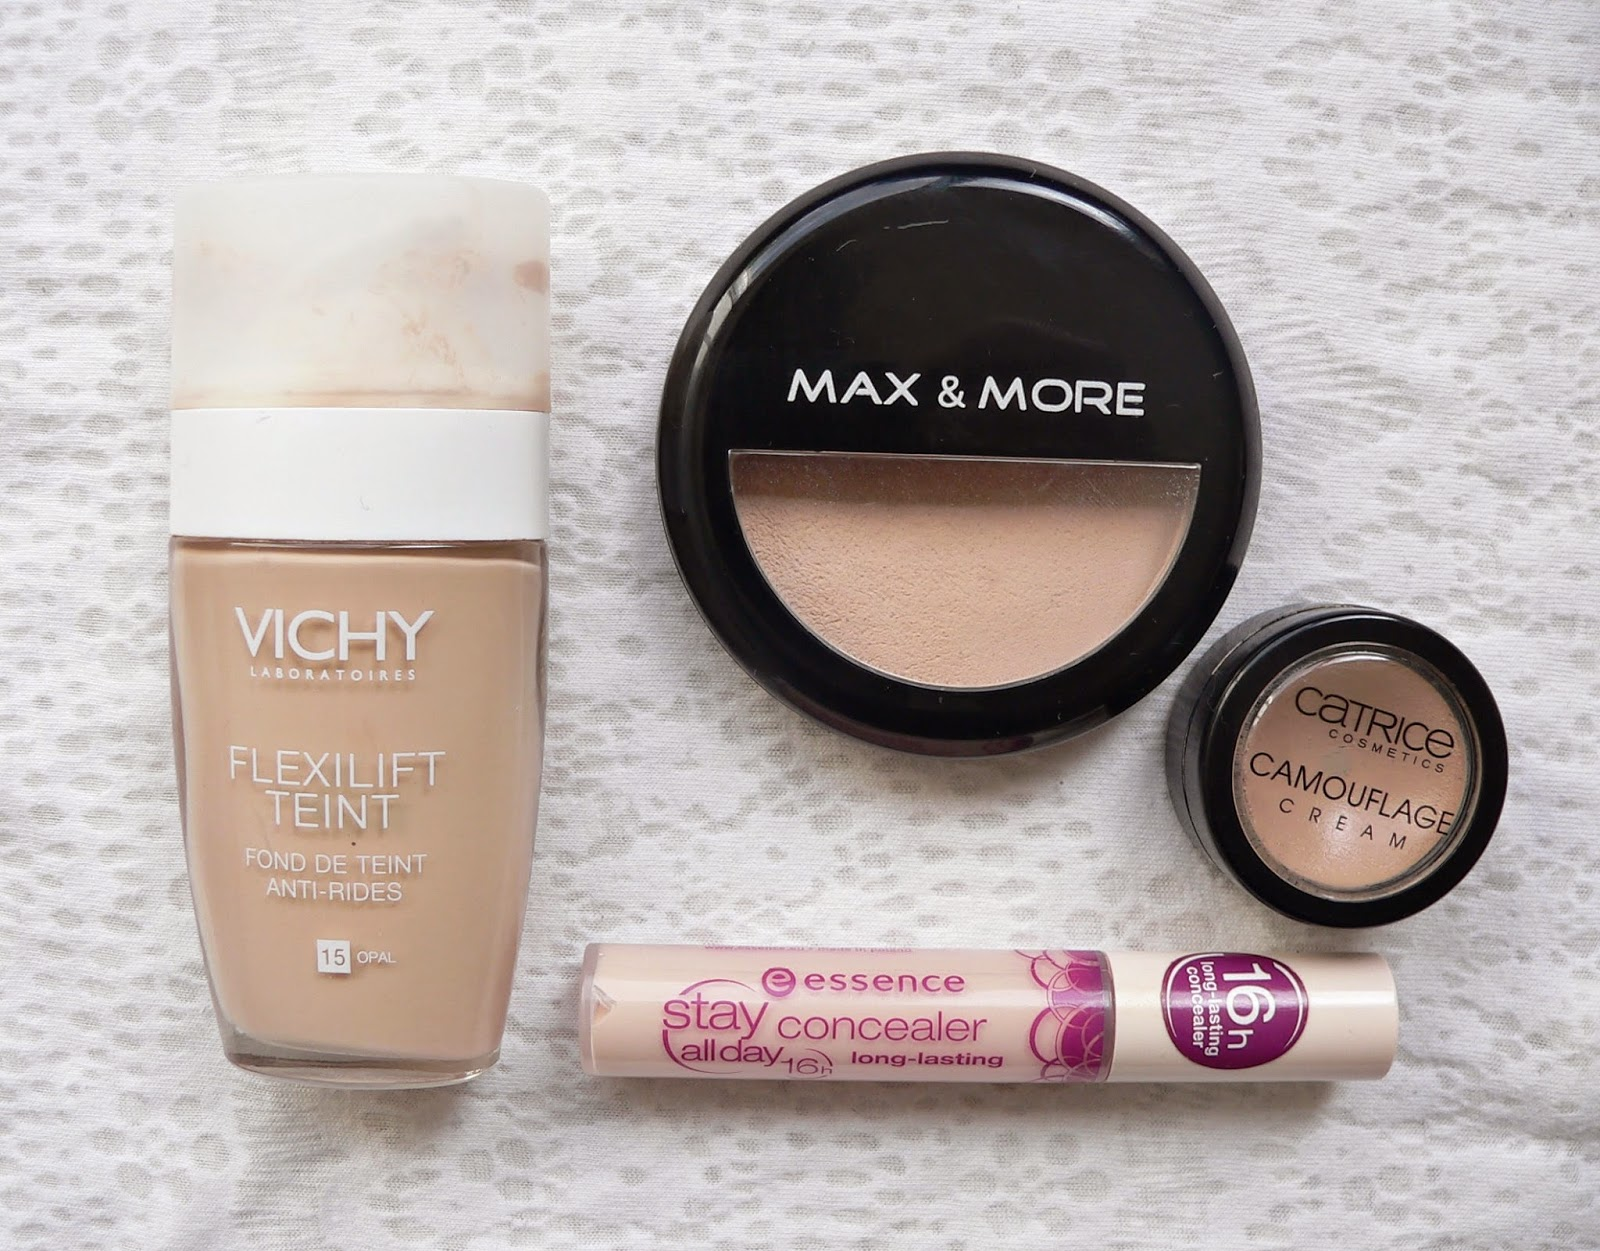 Vichy flexilift teint foundation, dewy foundation, Max & More Action poeder, review, make-up, catrice camouflage cream concealer, essence stay all day concealer